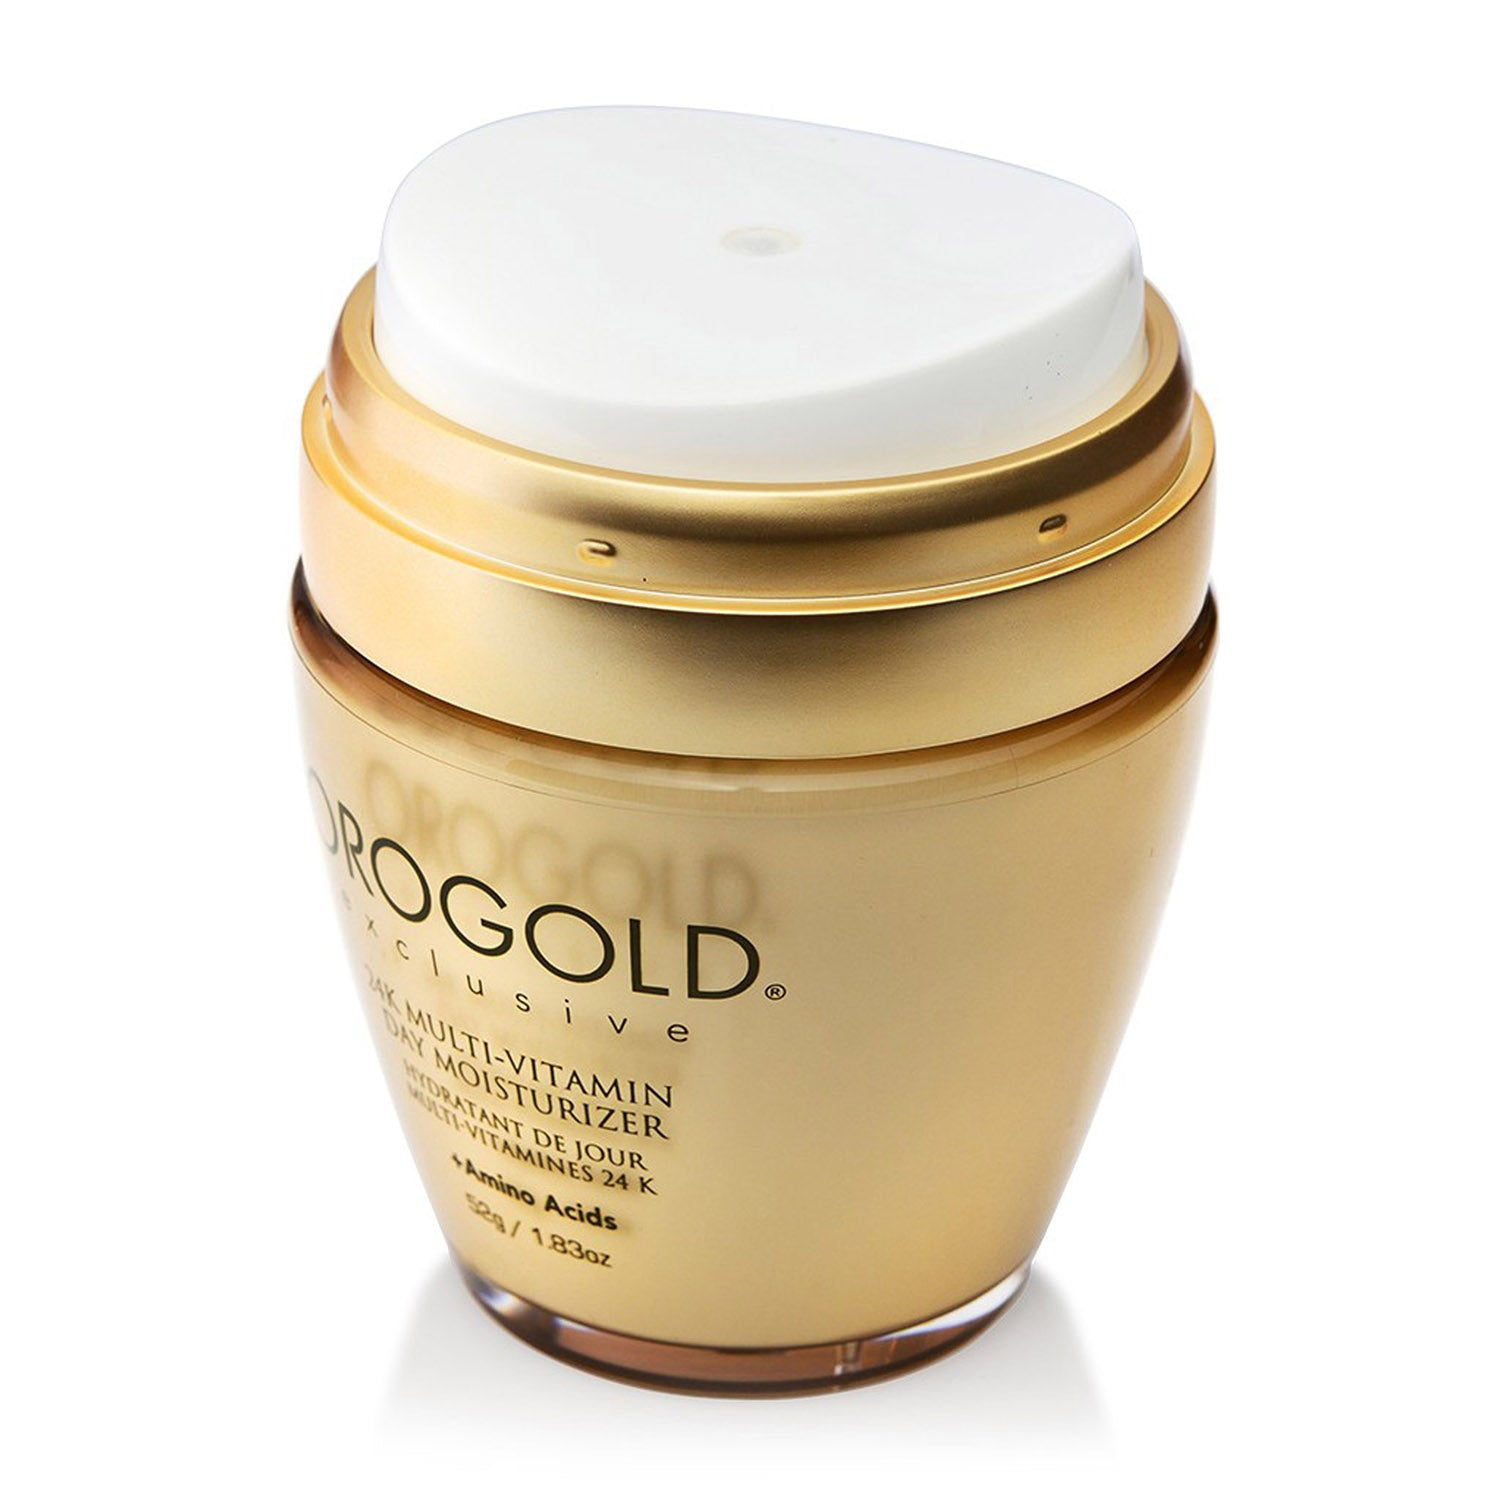 orogold multi vitamin deep moisturizer for antiaging